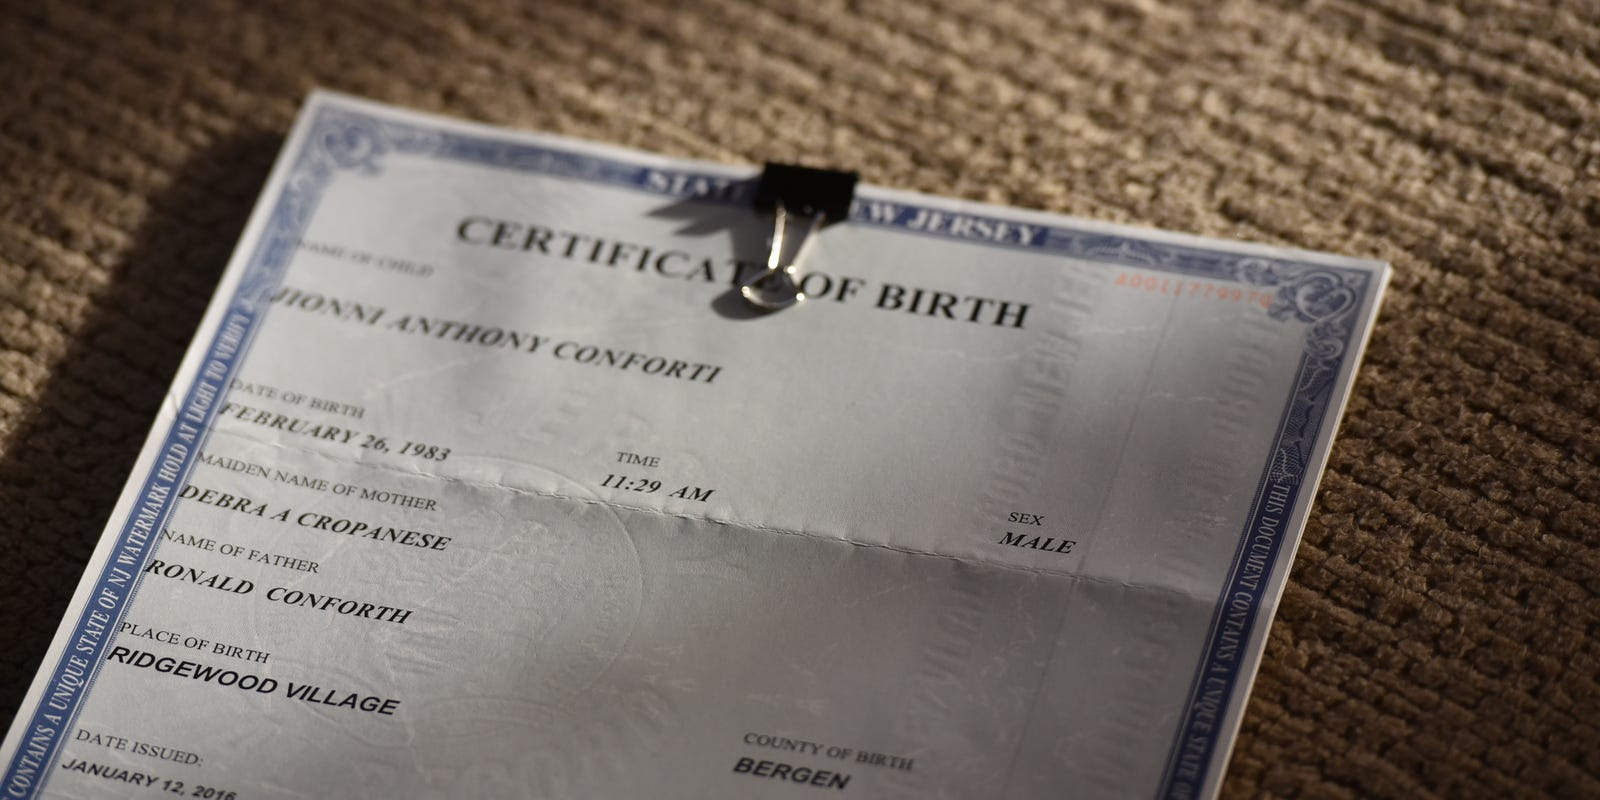 Arizona Adoptees Original Birth Certificates Are Hard To Come By